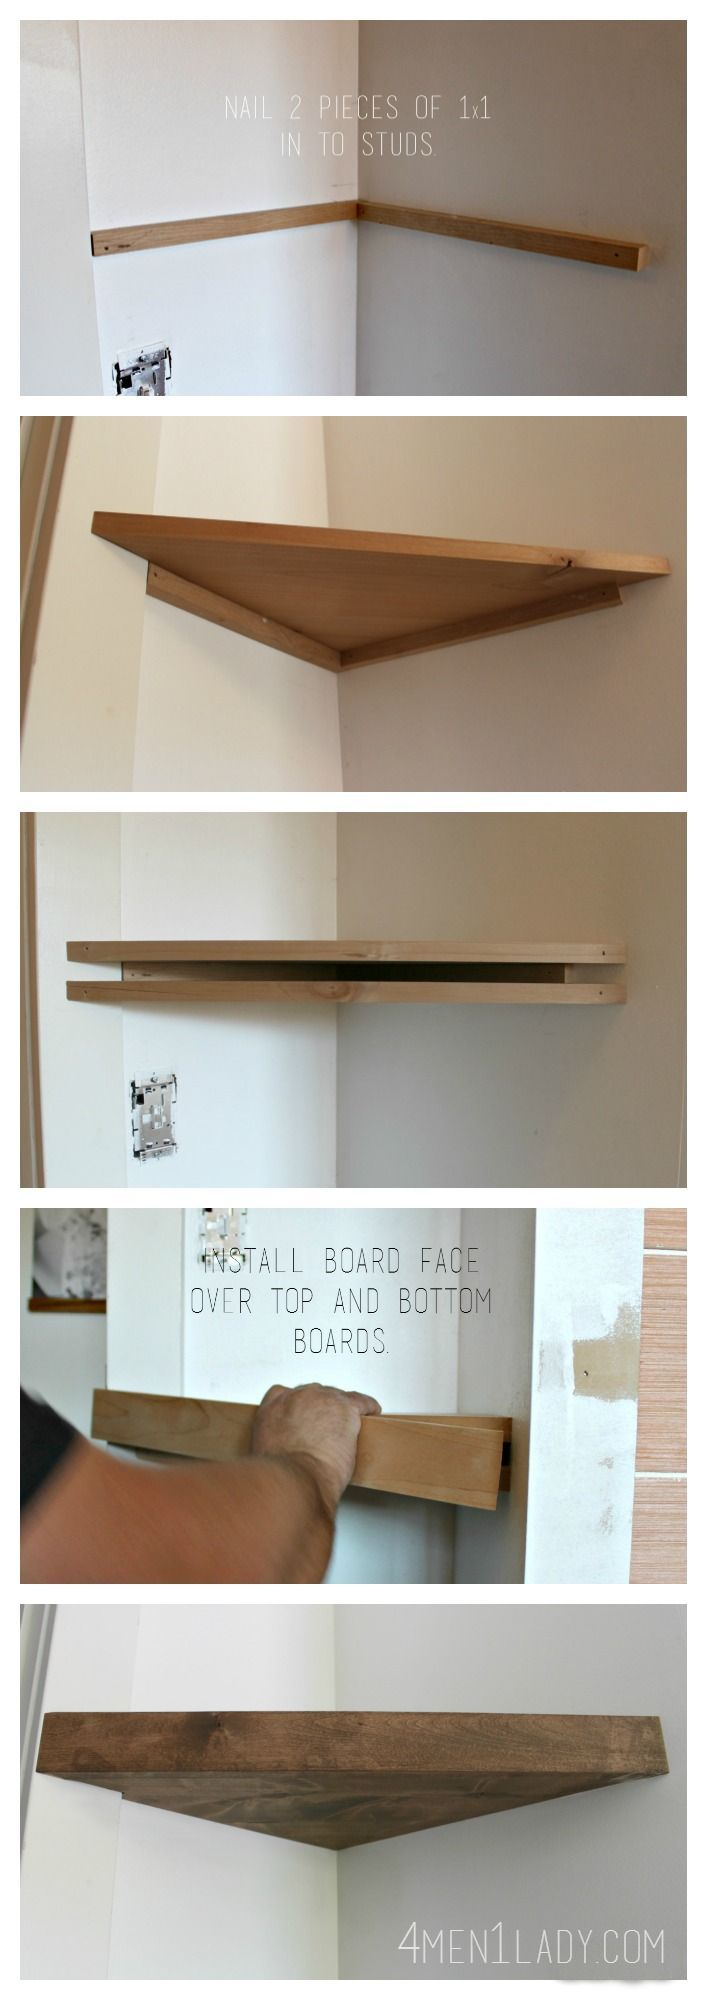 How To Build A Corner Shelf In 7 Minutes | DIY Ideas | Pinterest ...